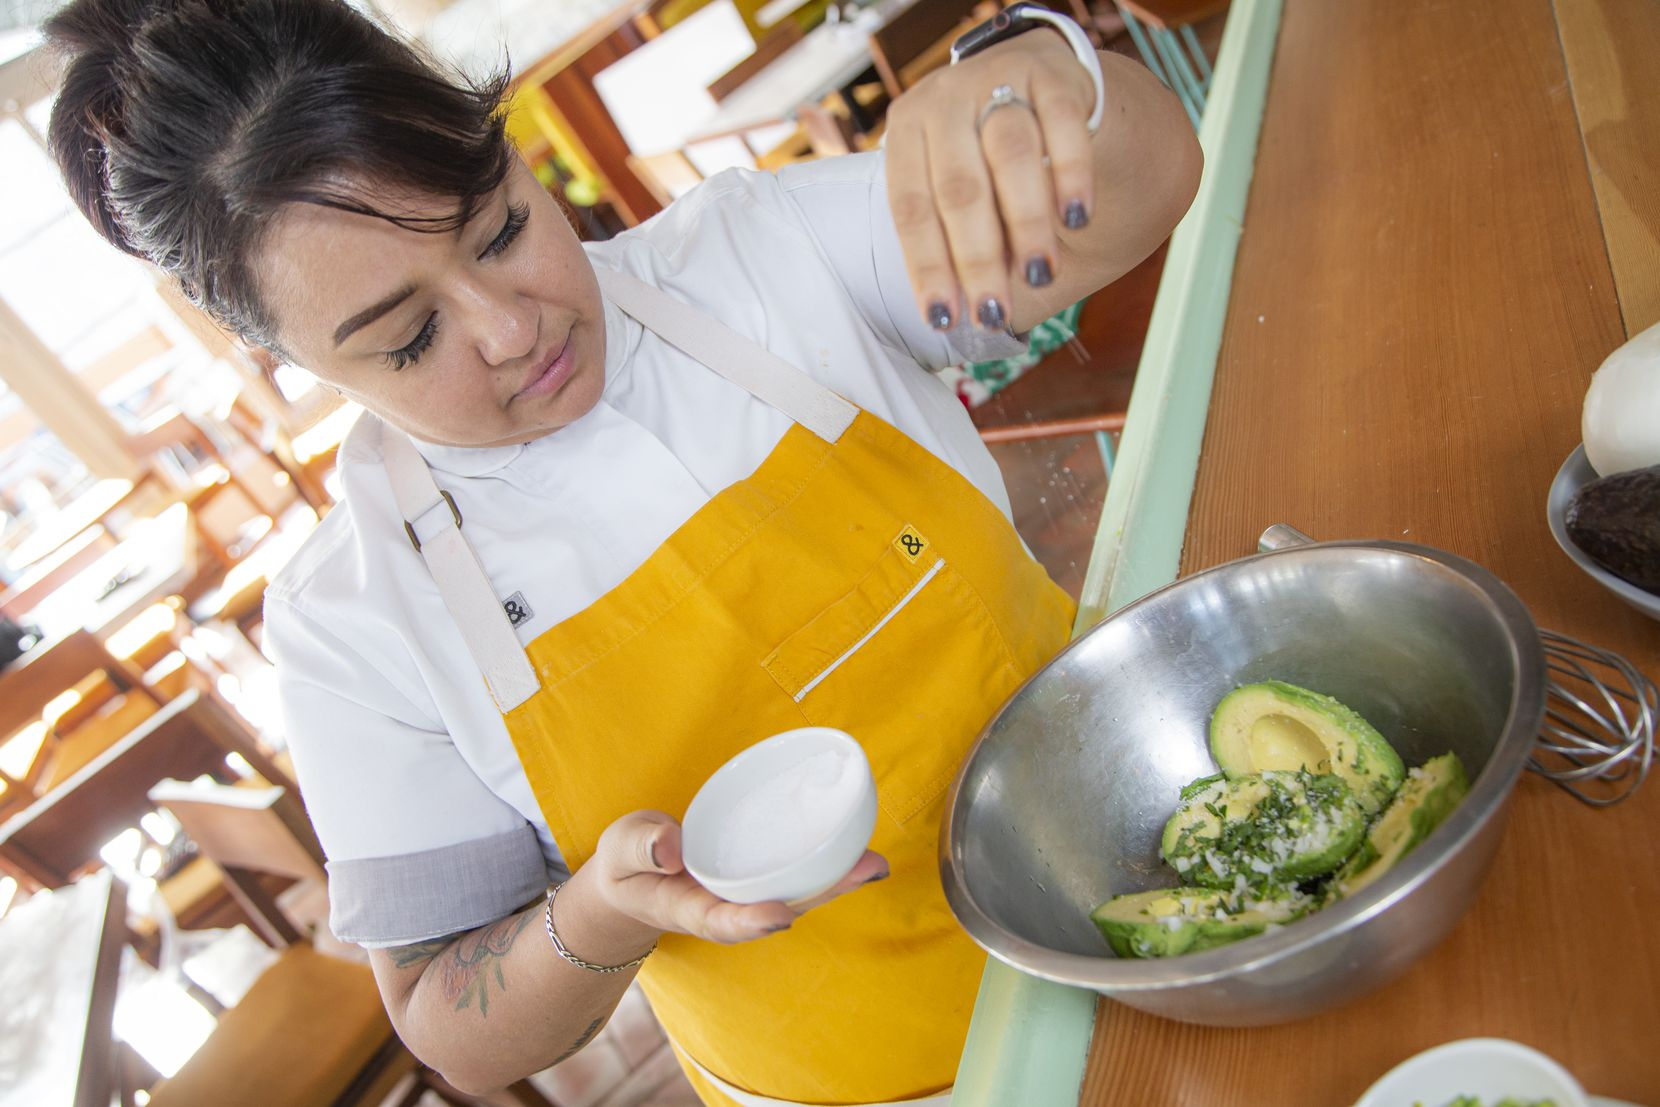 Chef Anastacia Quinones-Pittman adds salt as she prepares guacamole at Restaurant Jose, Wednesday, December 23, 2020.